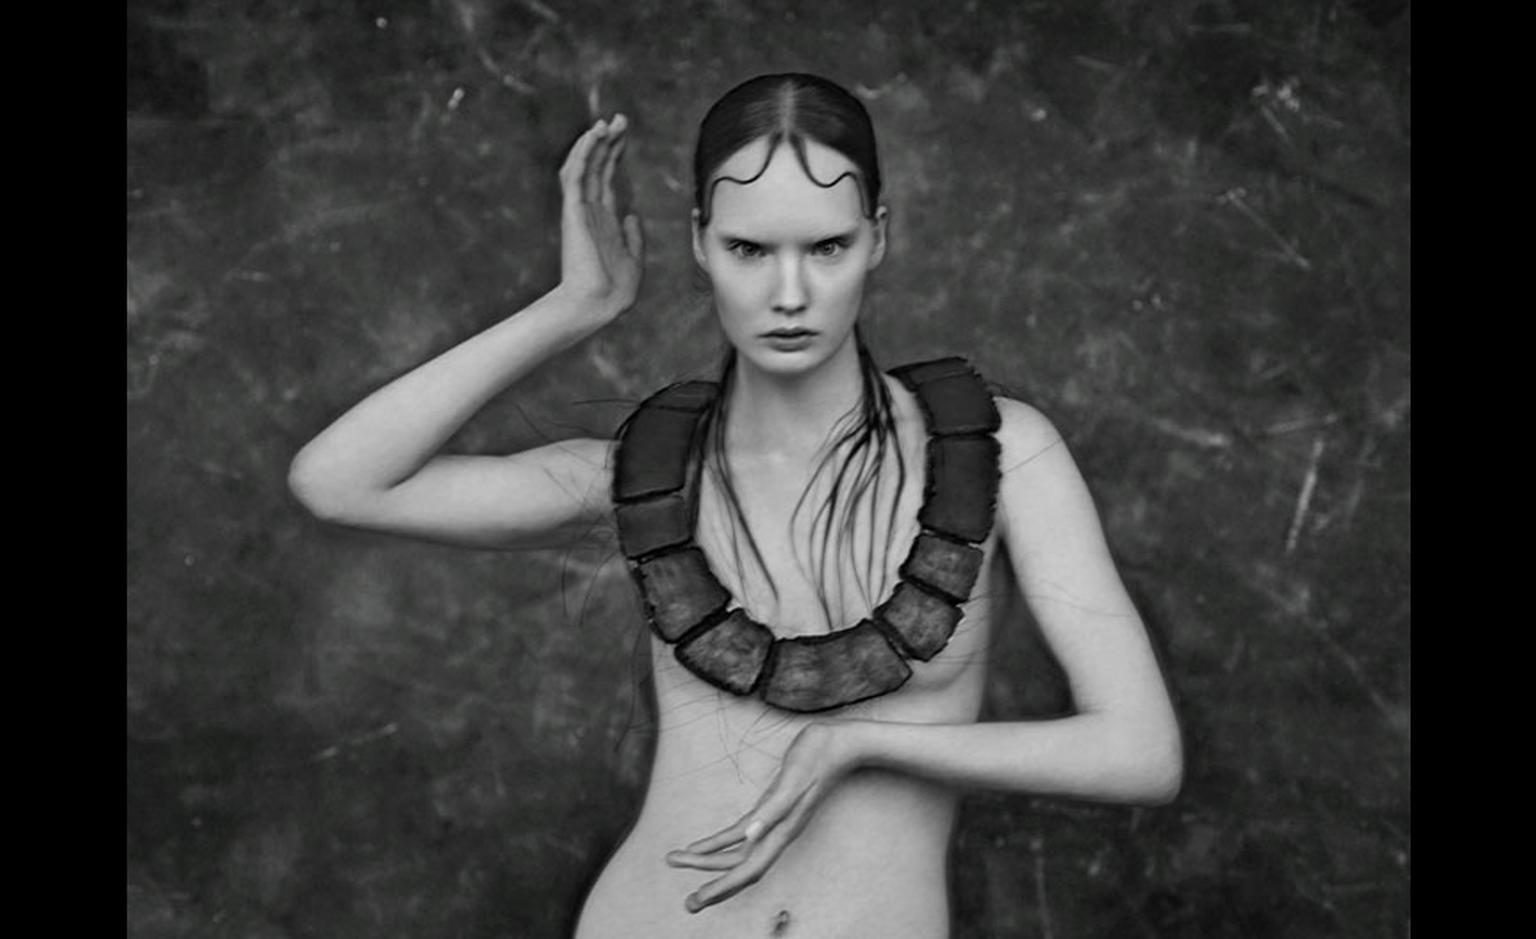 Kath Libbert. Carbo necklace by Agnes Larsson. Photographer Carl Bengtsson. Make-up/hair Ignacio Alonso. Retouch Anna Waldemarsson, Josefine JÅ¡nsson